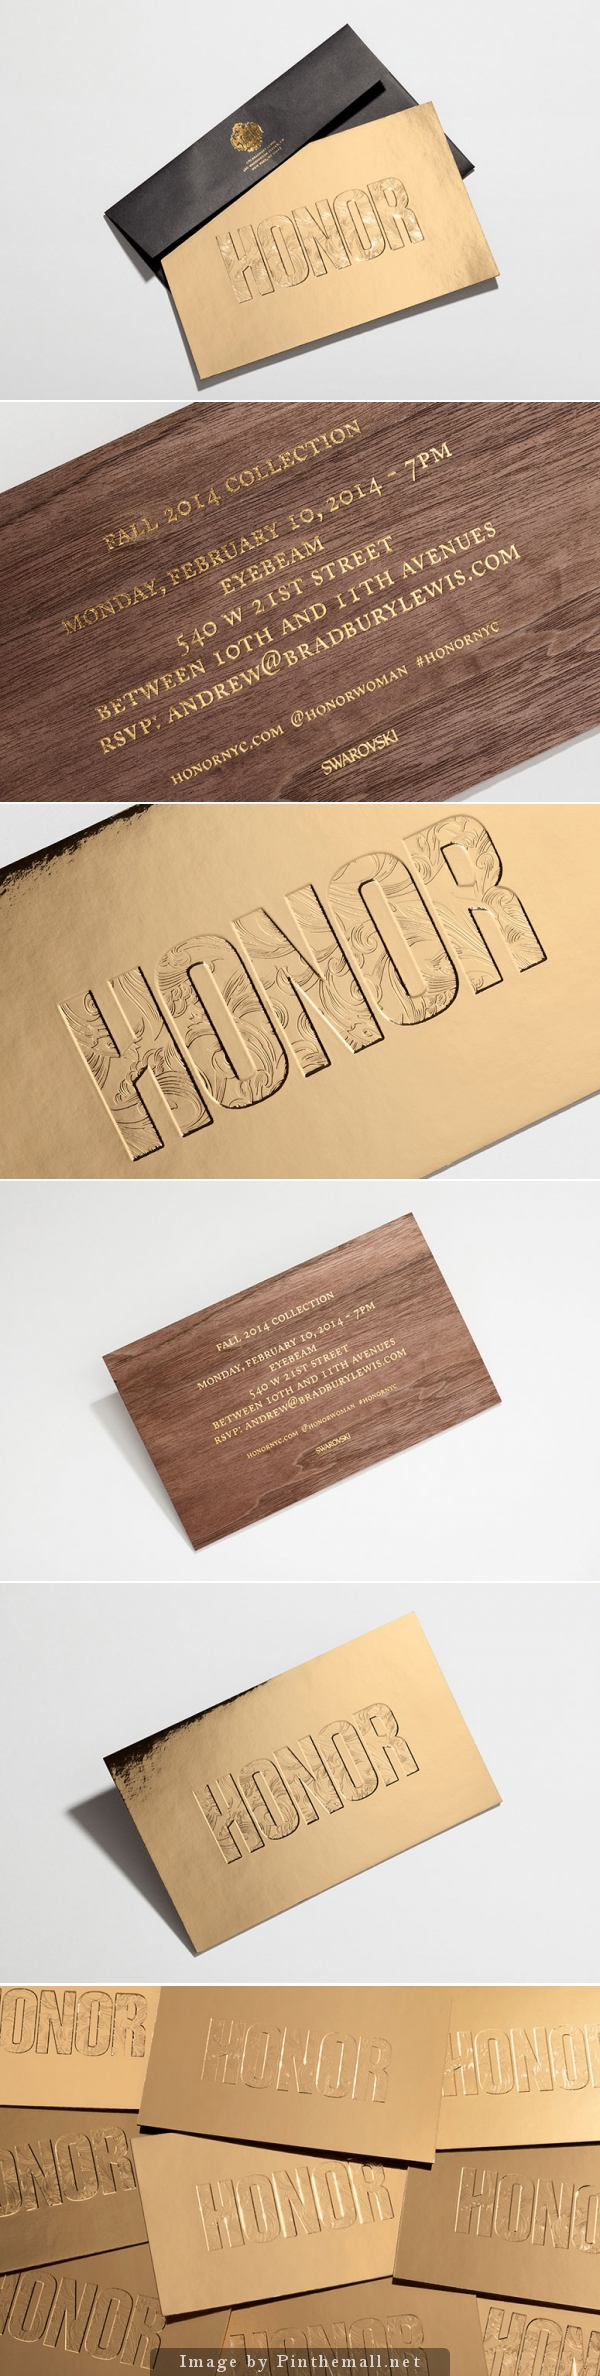 A siren song of wood veneer and debossed gold foil, this lavish ...